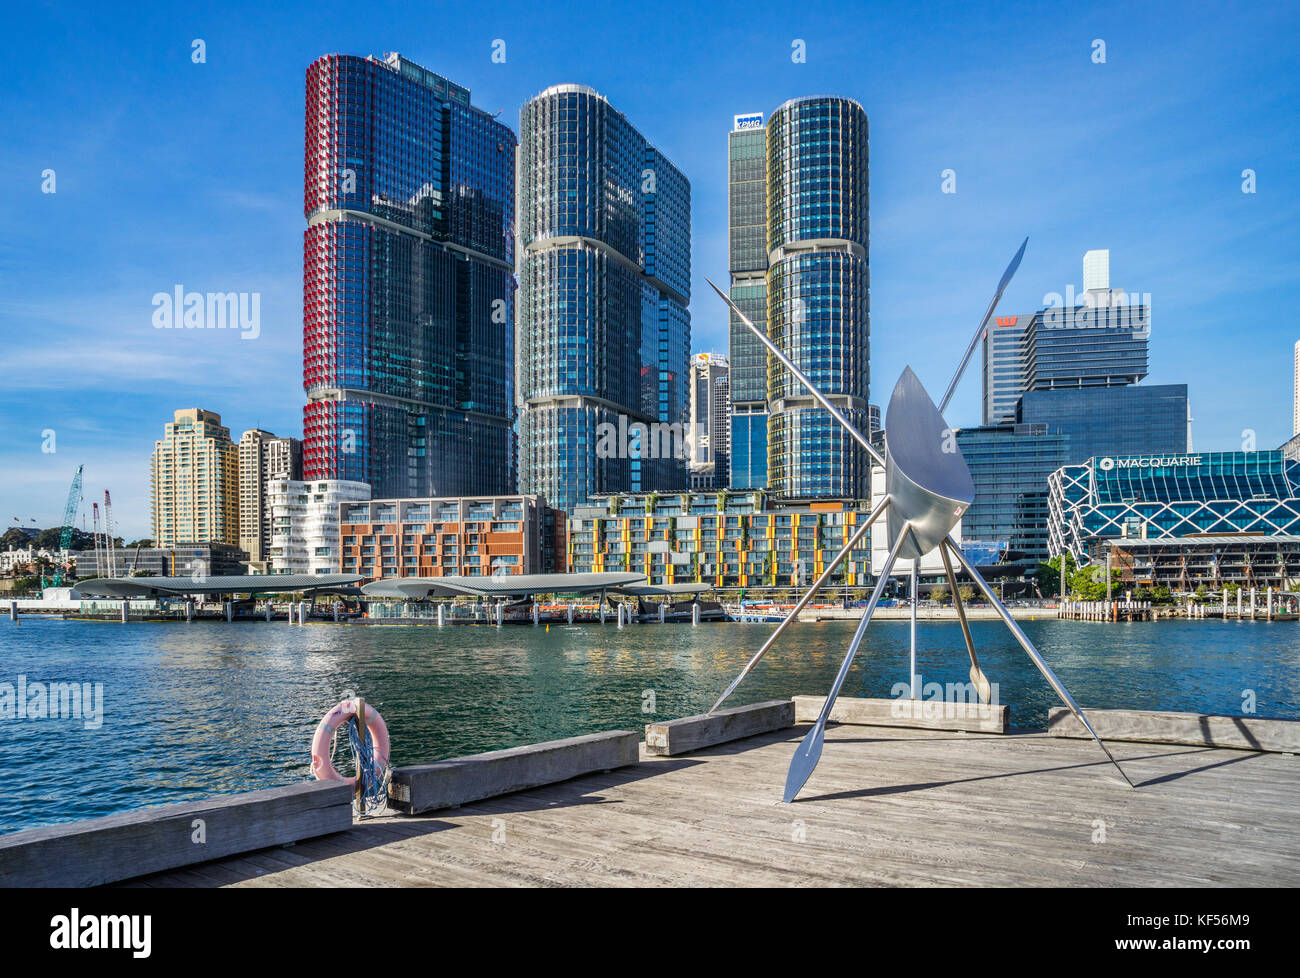 Australia, New South Wales, Sydney, Darling Harbour, stainless steel installation titled 'SubWharfyen' by - Stock Image